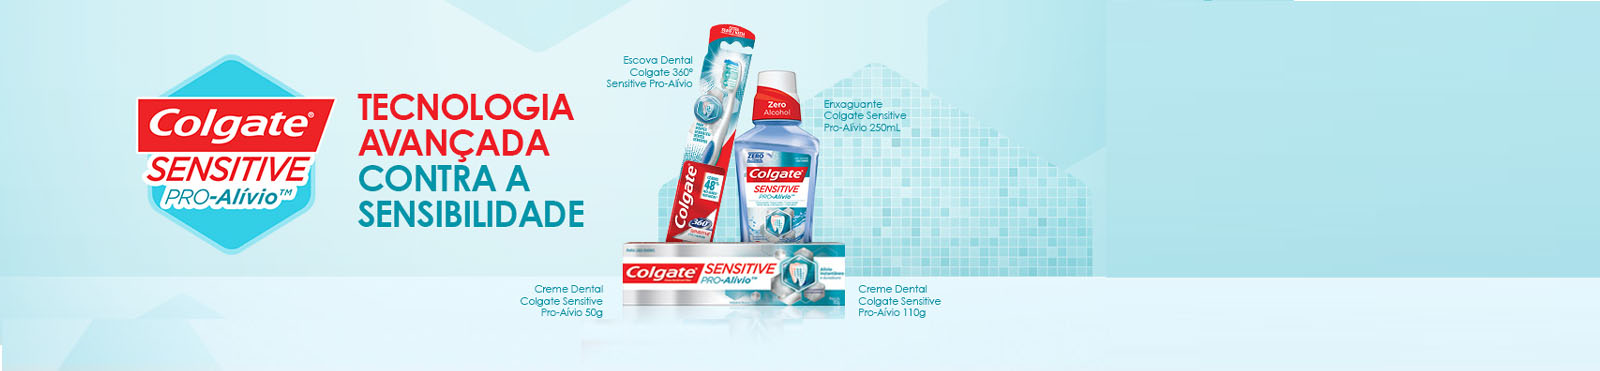 superbanner-colgate-sensitive